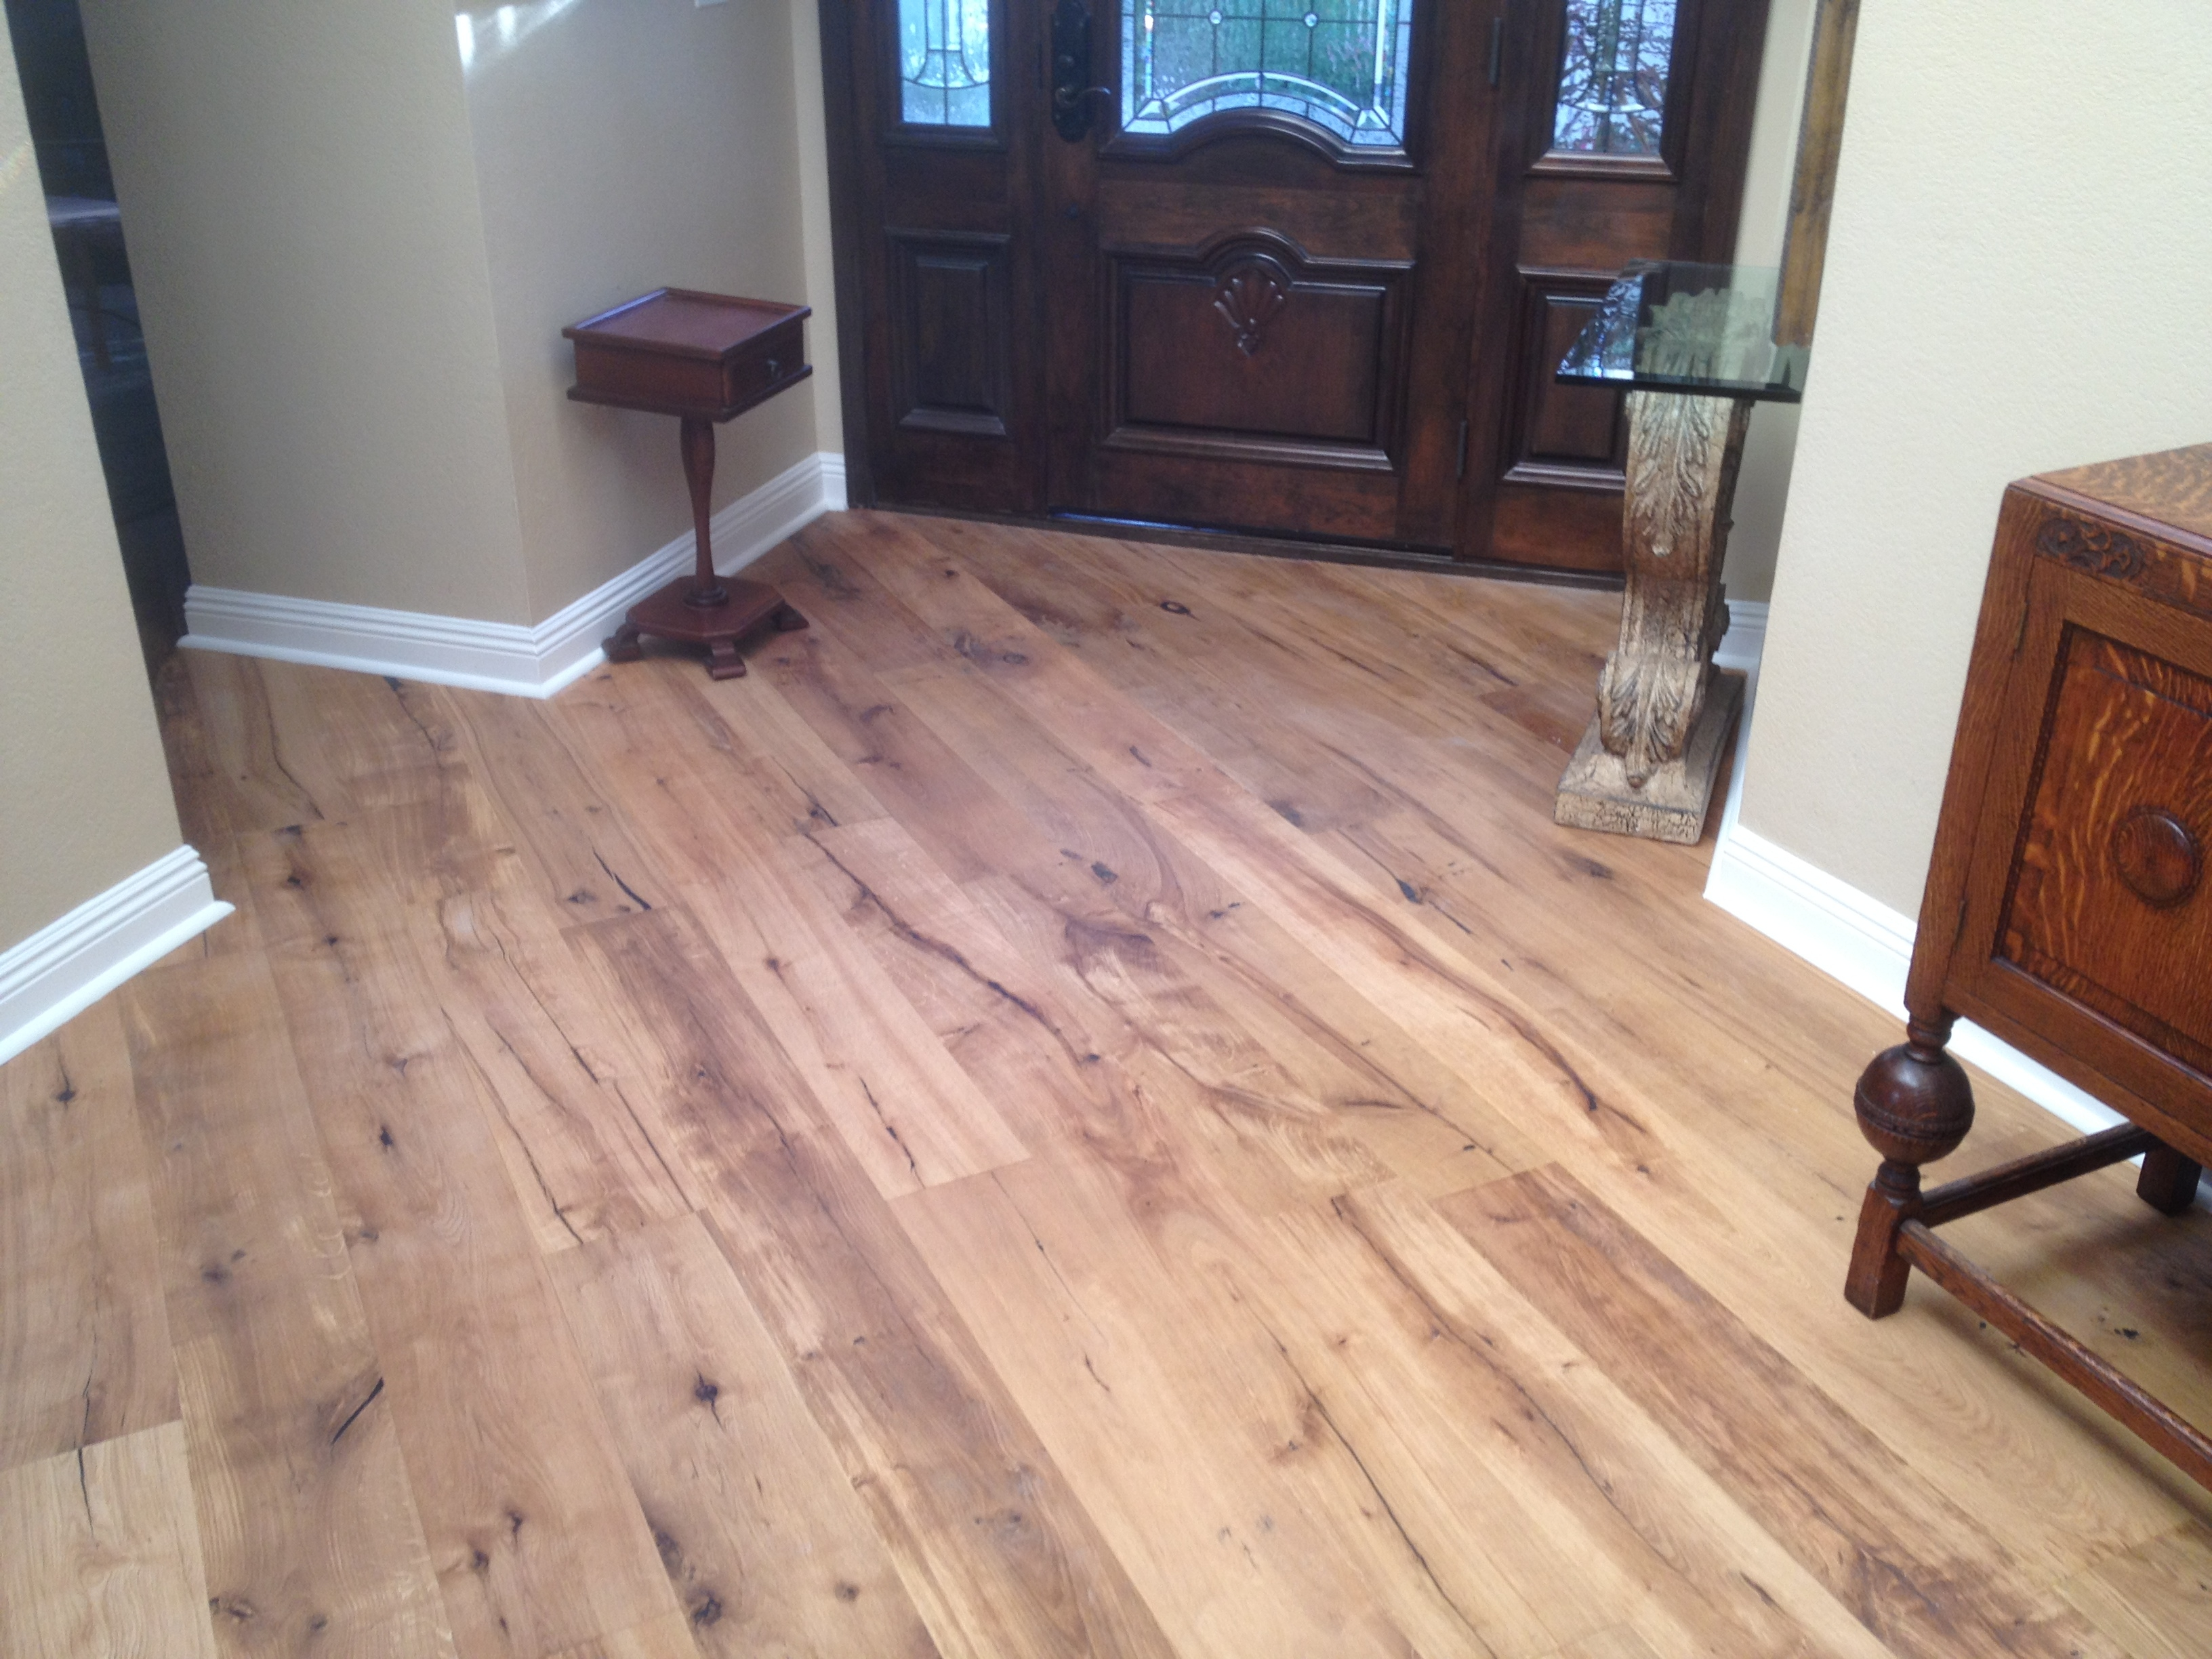 Flooring That Looks Like Wood Plankstile flooring that looks like wood planks new tile that looks like